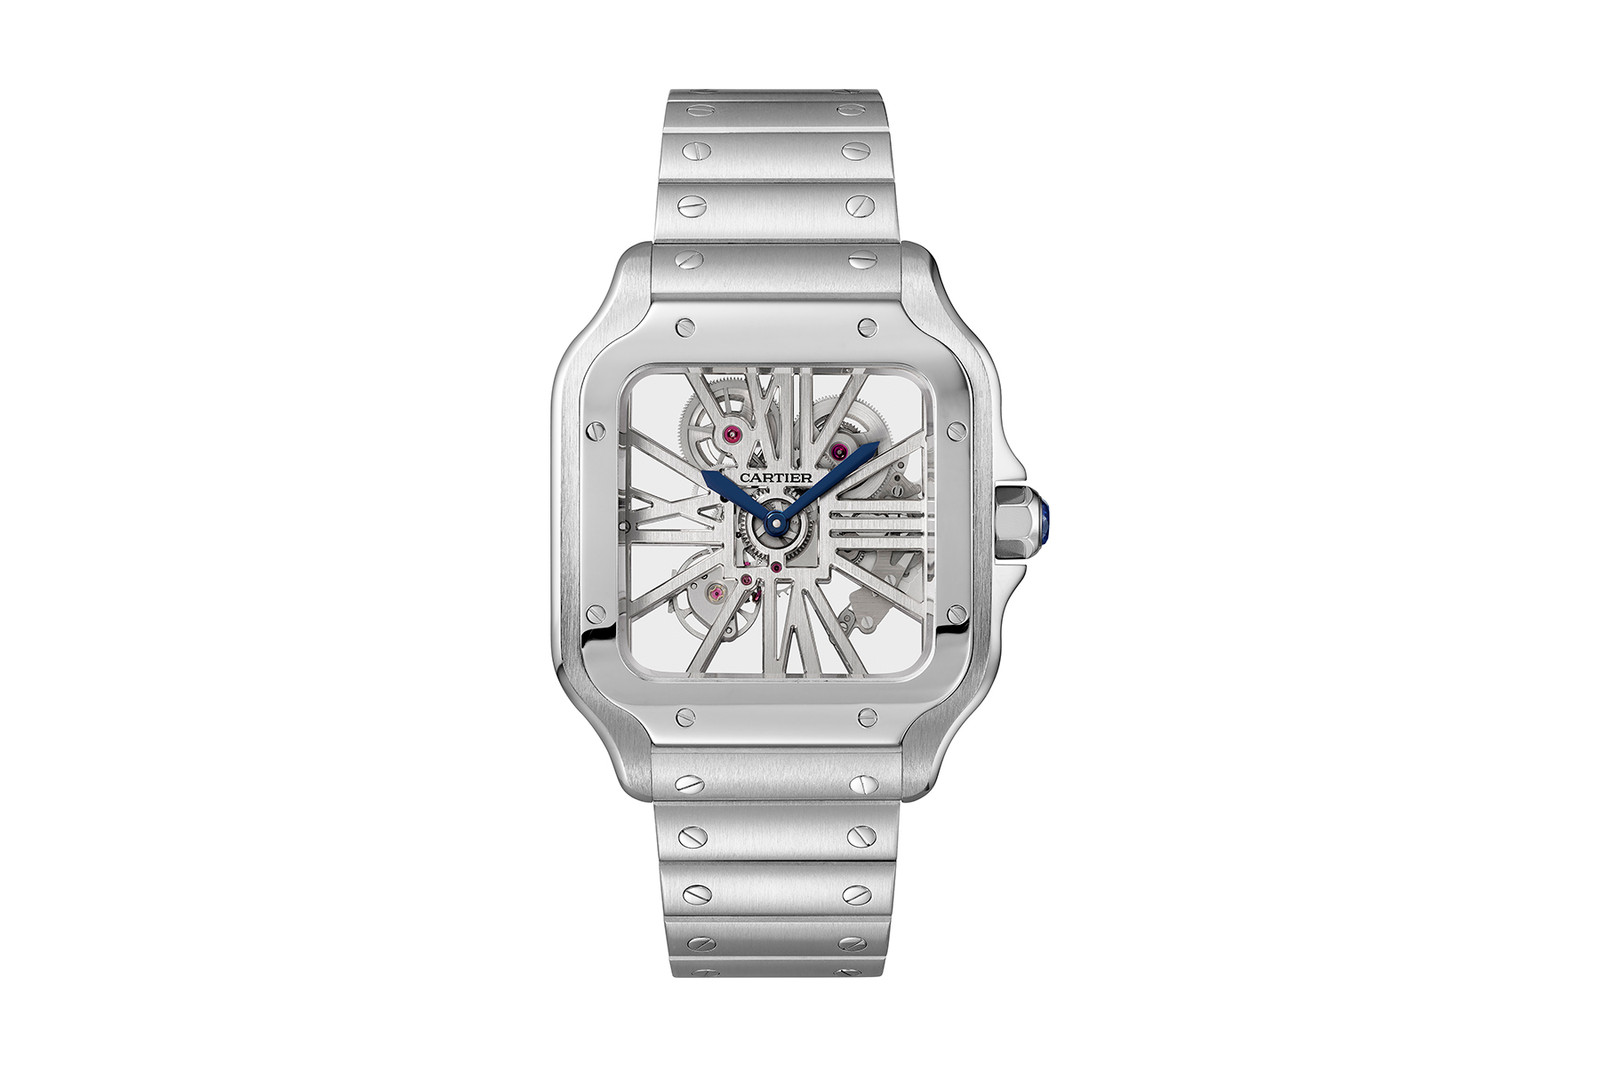 Cartier 推出全新 Santos de Cartier Skeleton